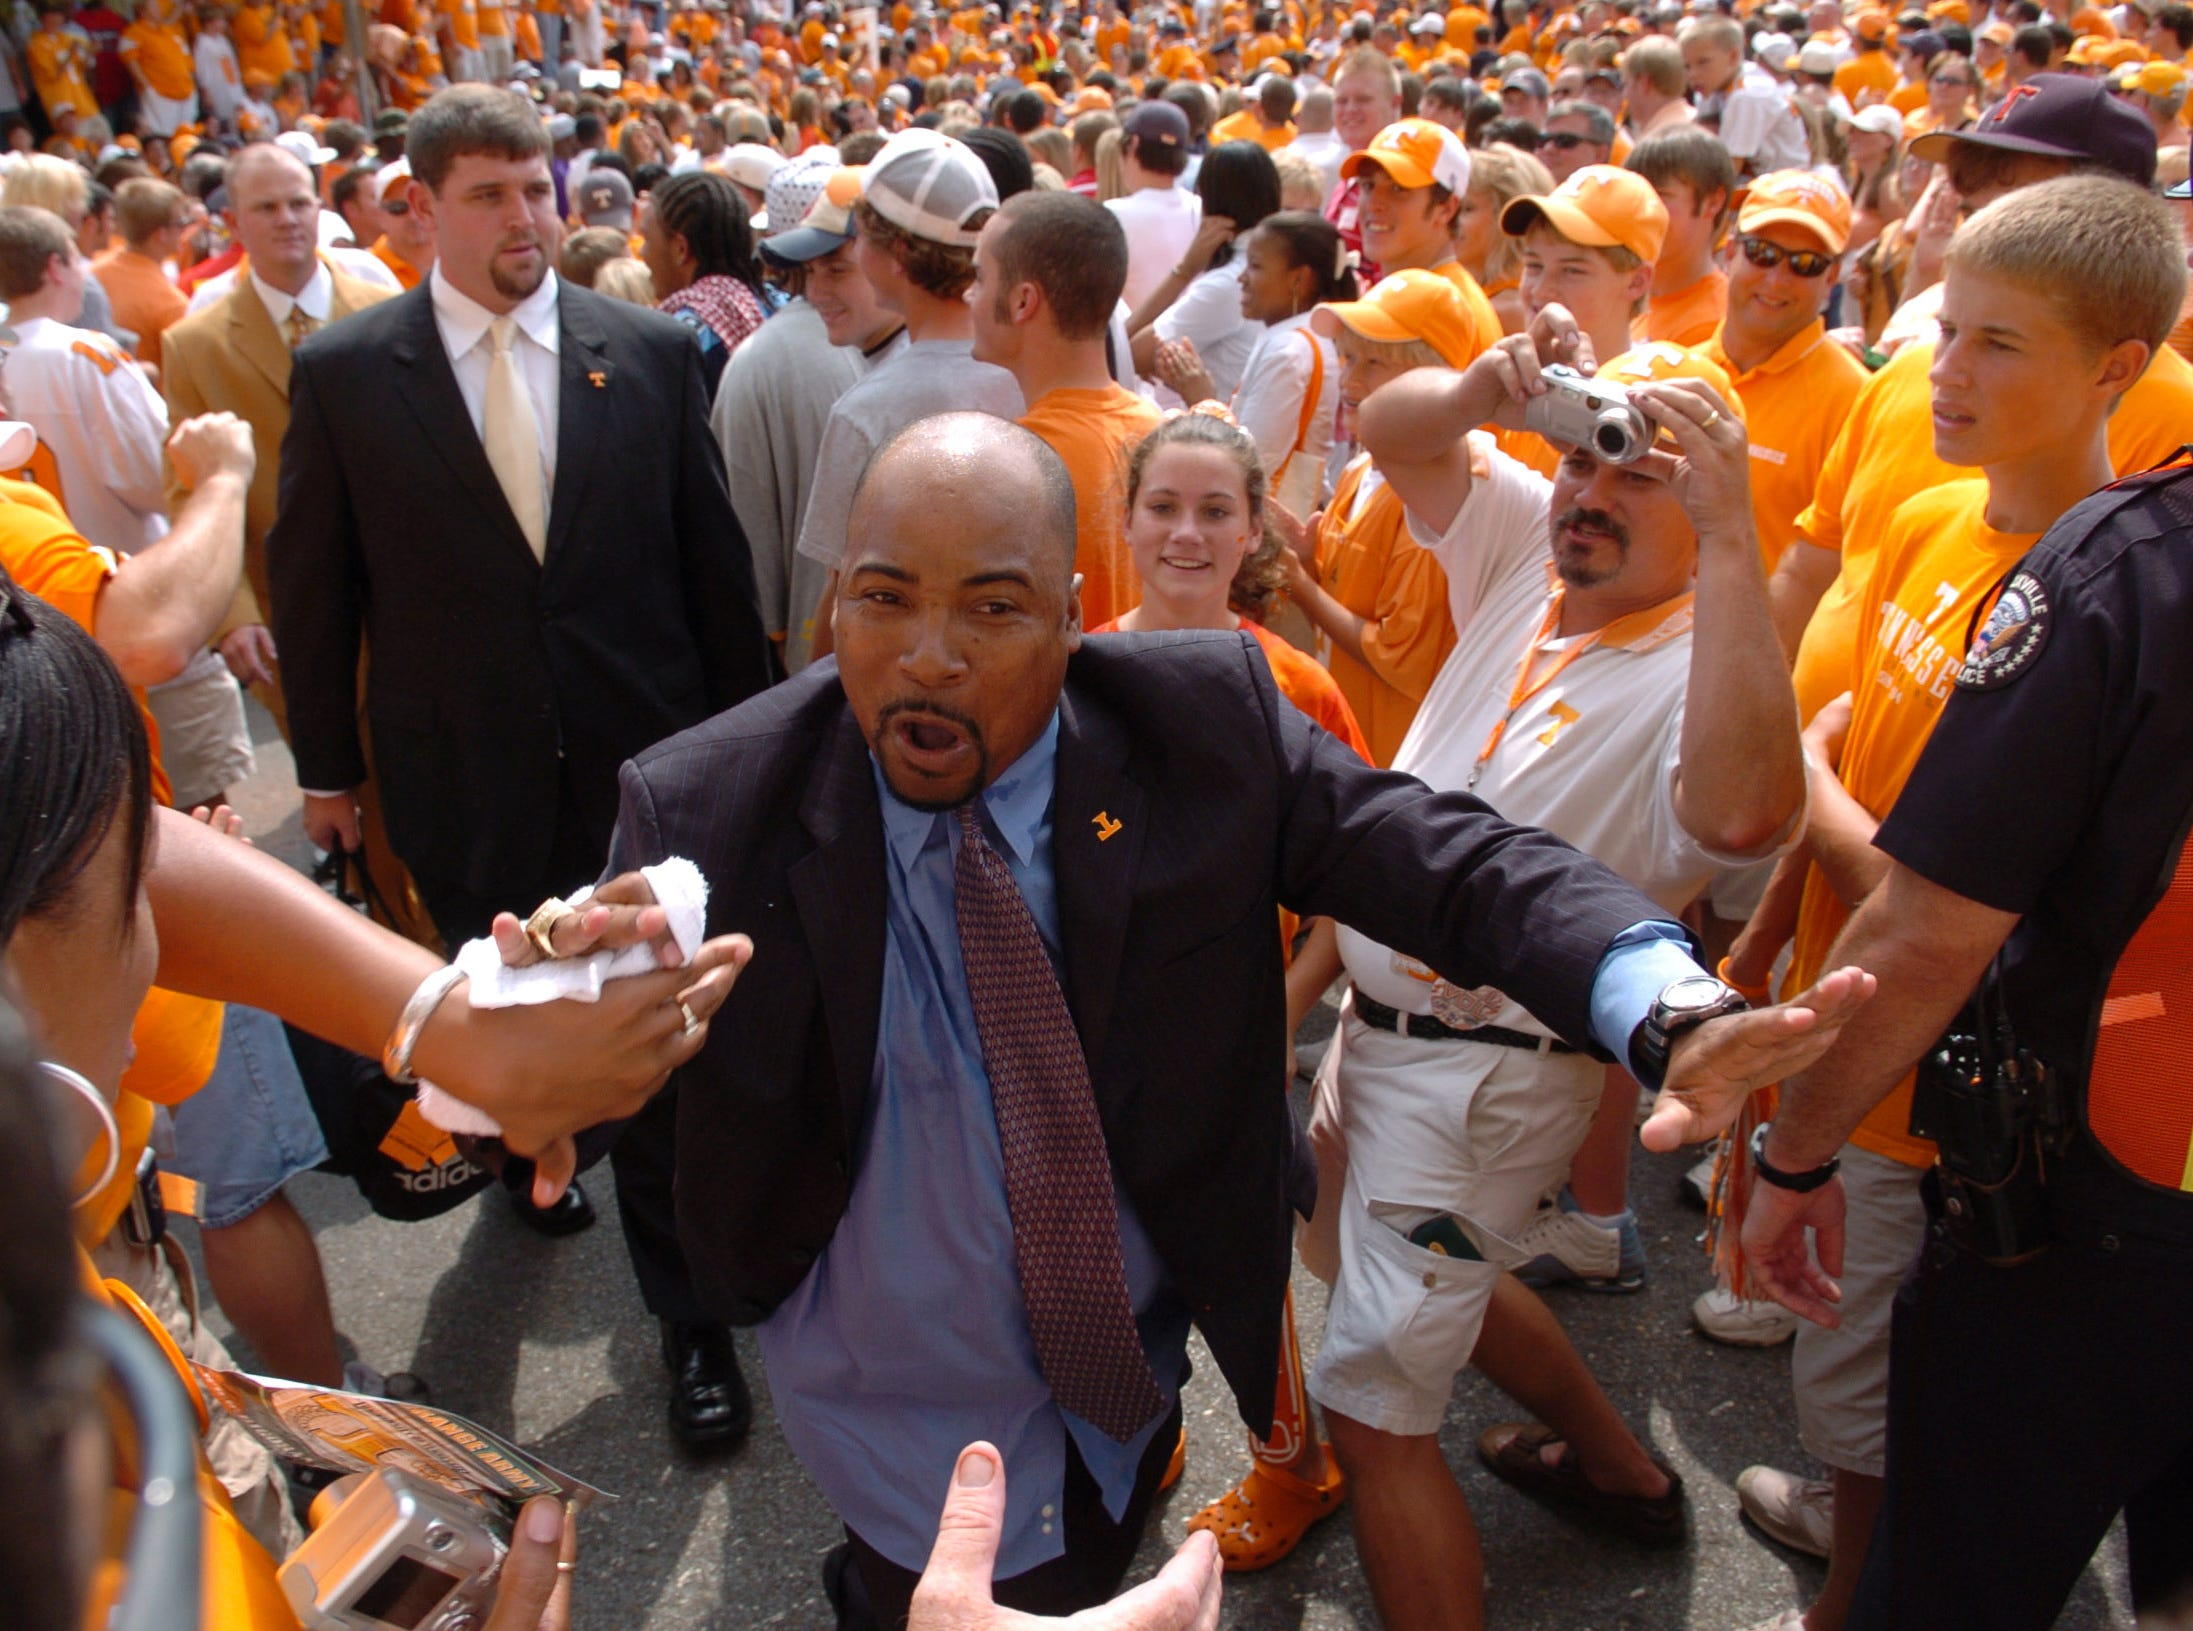 0902utcal.JA#6271.jpg -- sports --  UT receivers coach Trooper Taylor gets pumped up as he high fives fans during the Vol Walk outside of Neyland Stadium Saturday  prior to the Tennessee game against California. Jeff Adkins/NEWS SENTINEL ----09/02/2006.